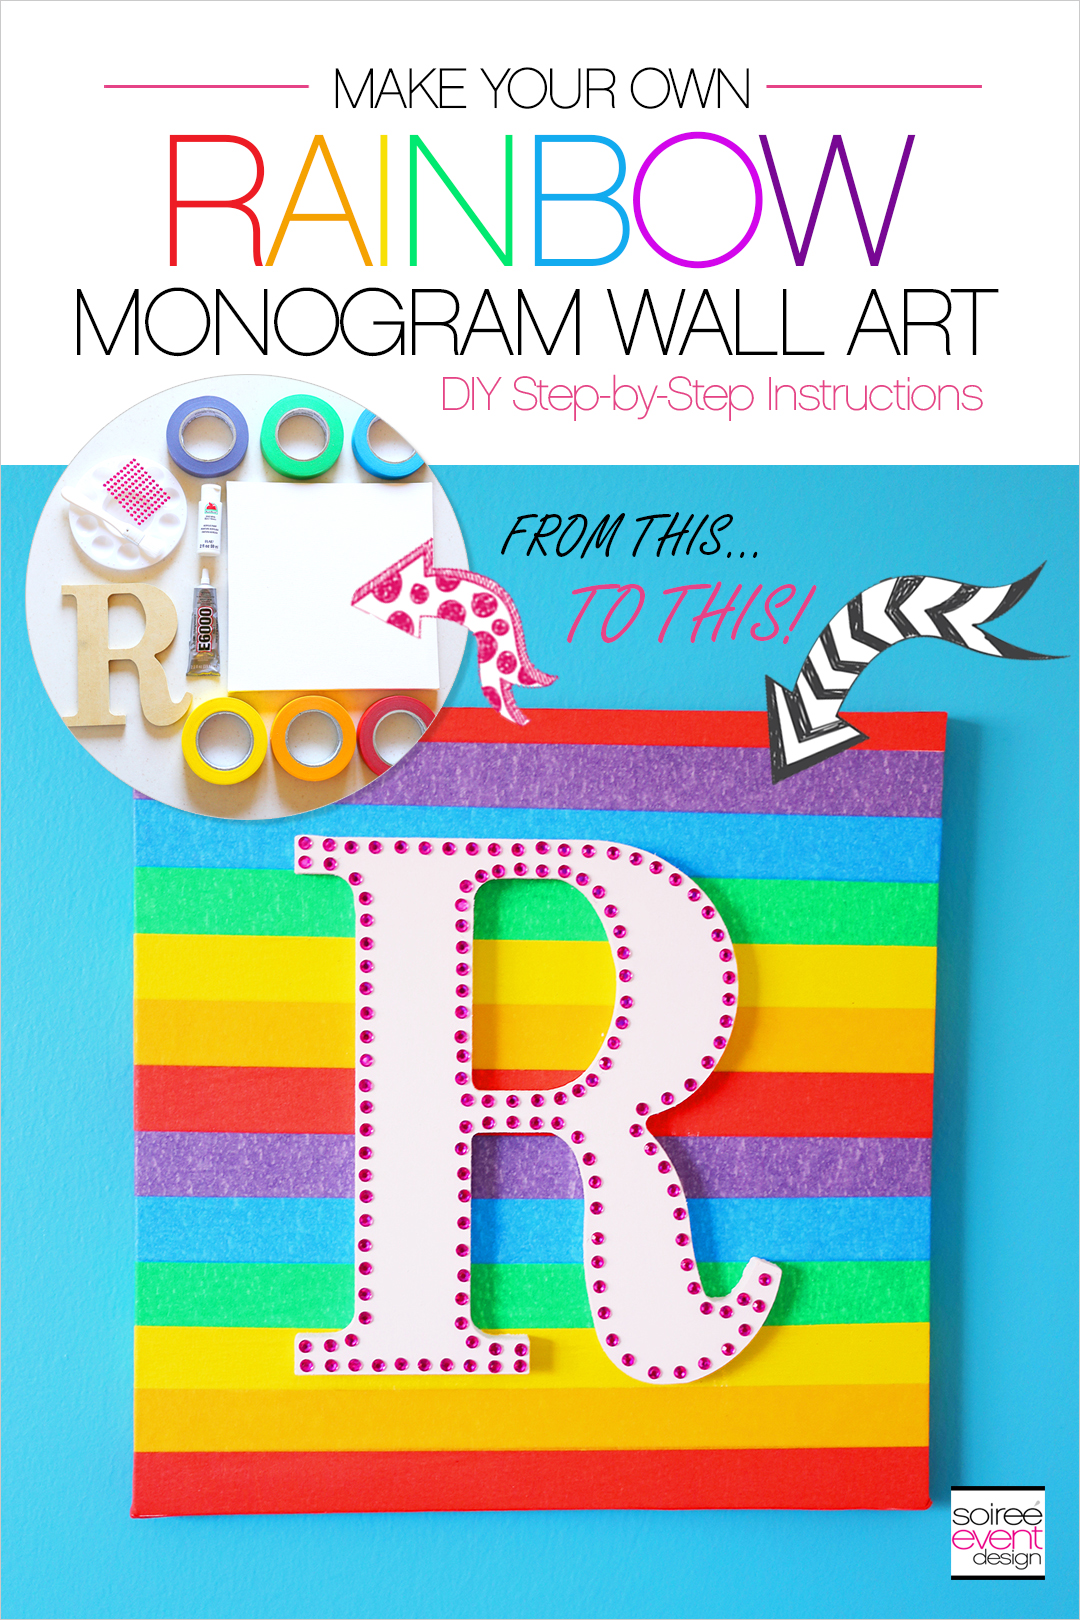 make-your-own-rainbow-wall-art